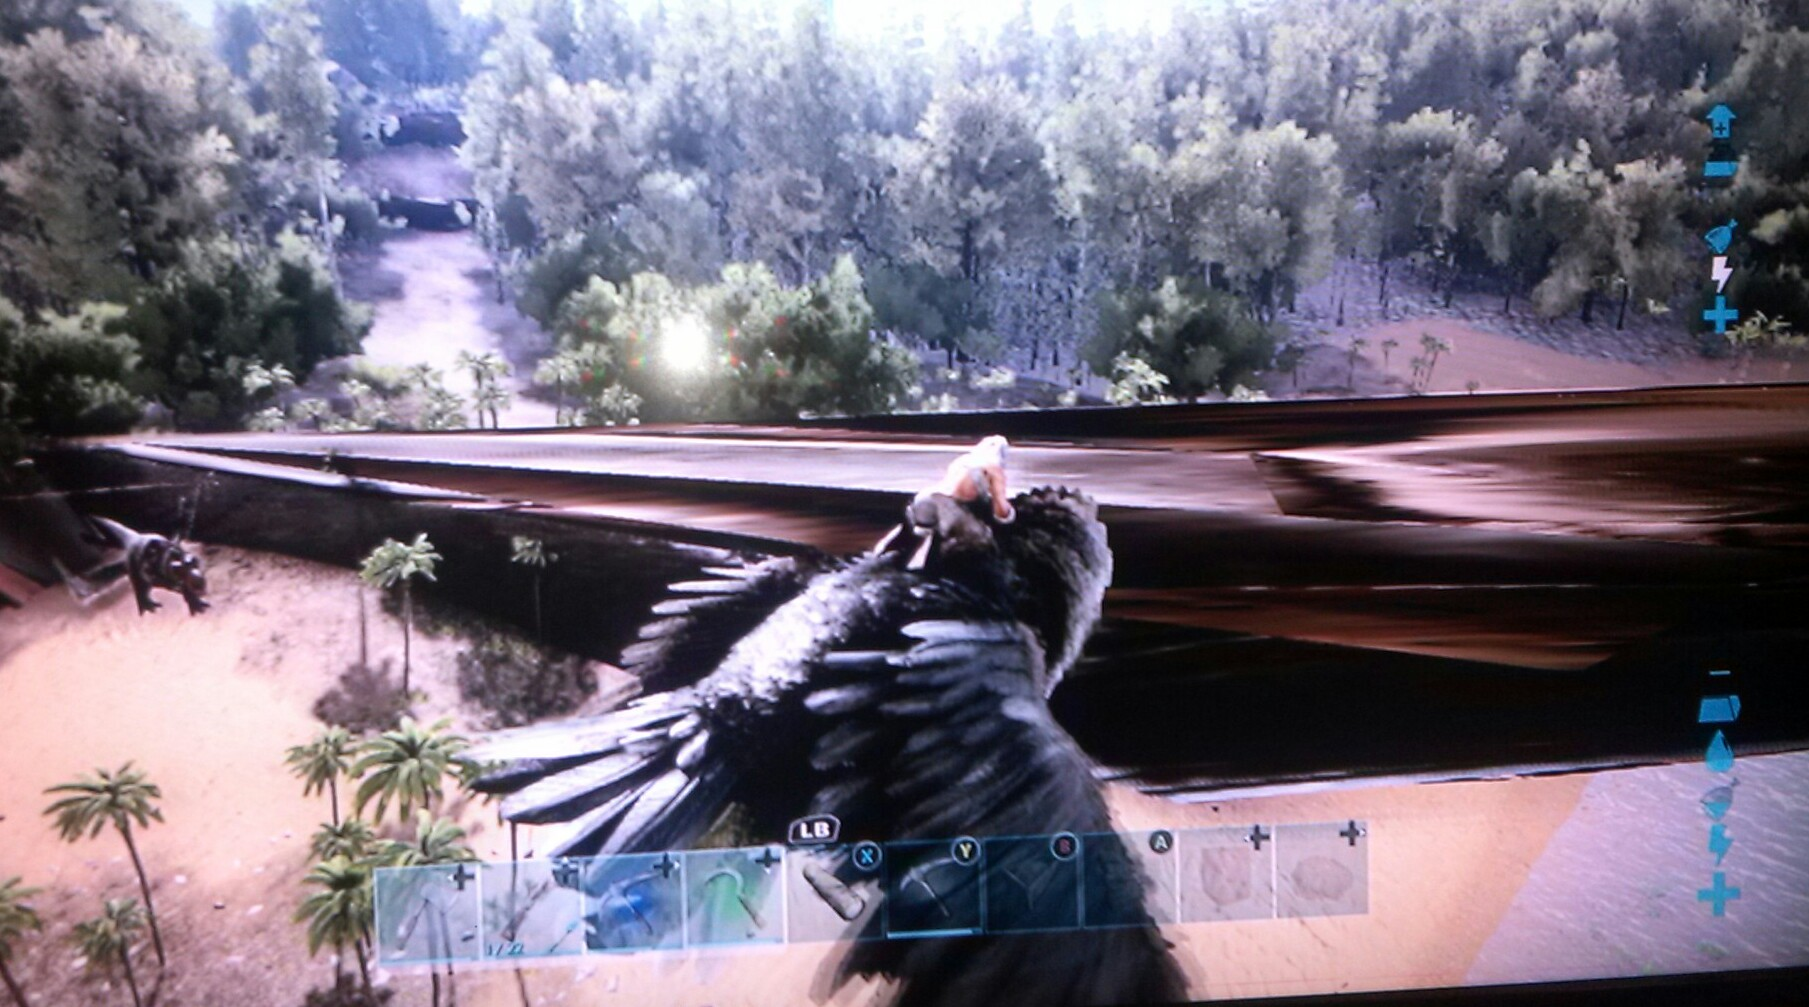 My Single Player save self deleted? - Bug Reports & Support - ARK